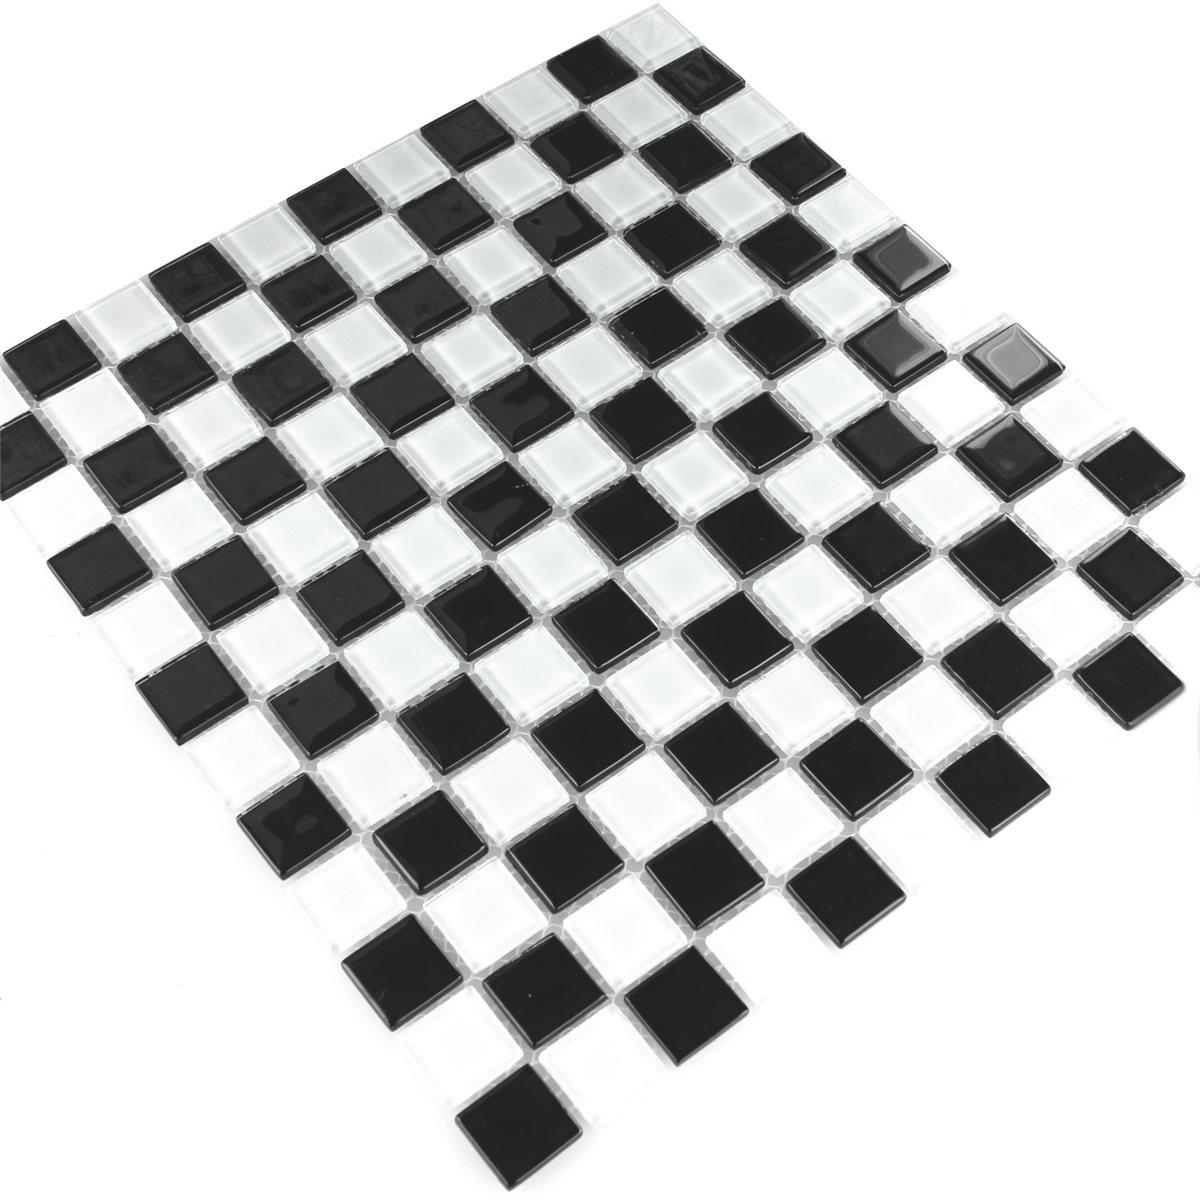 glass mosaic tiles chess board black white. Black Bedroom Furniture Sets. Home Design Ideas